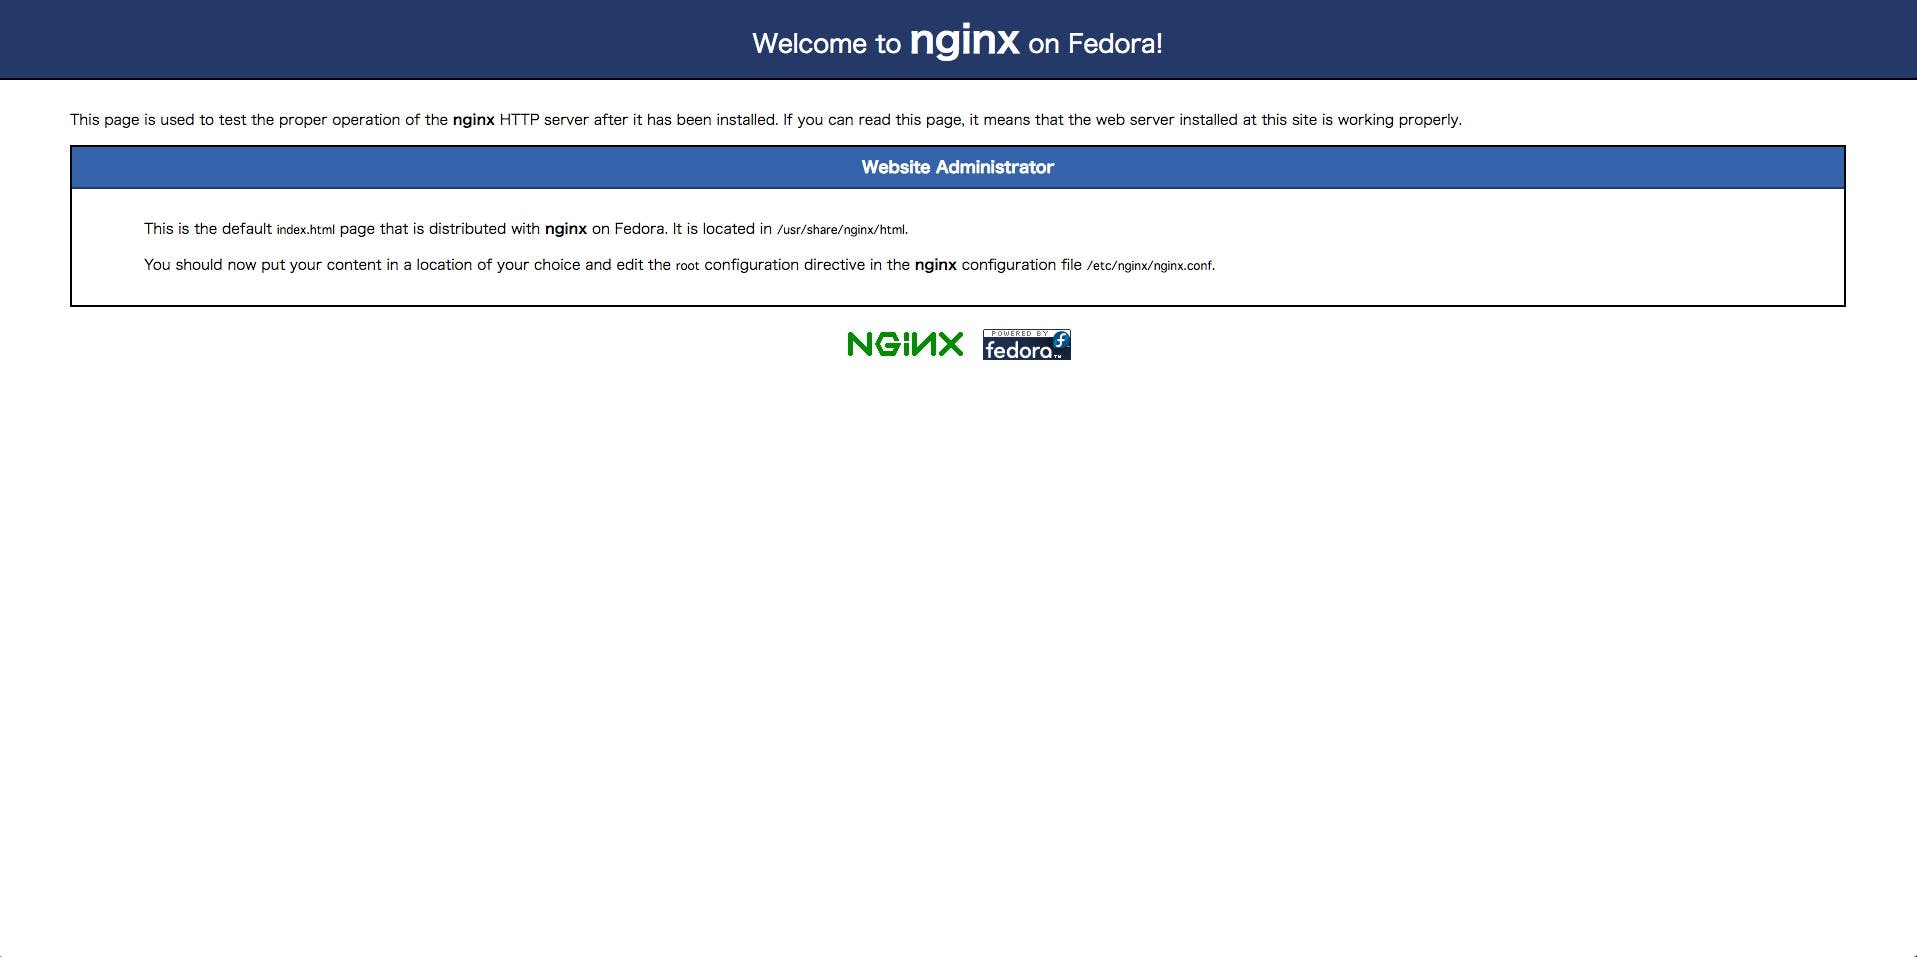 Test_Page_for_the_Nginx_HTTP_Server_on_Fedora.jpg